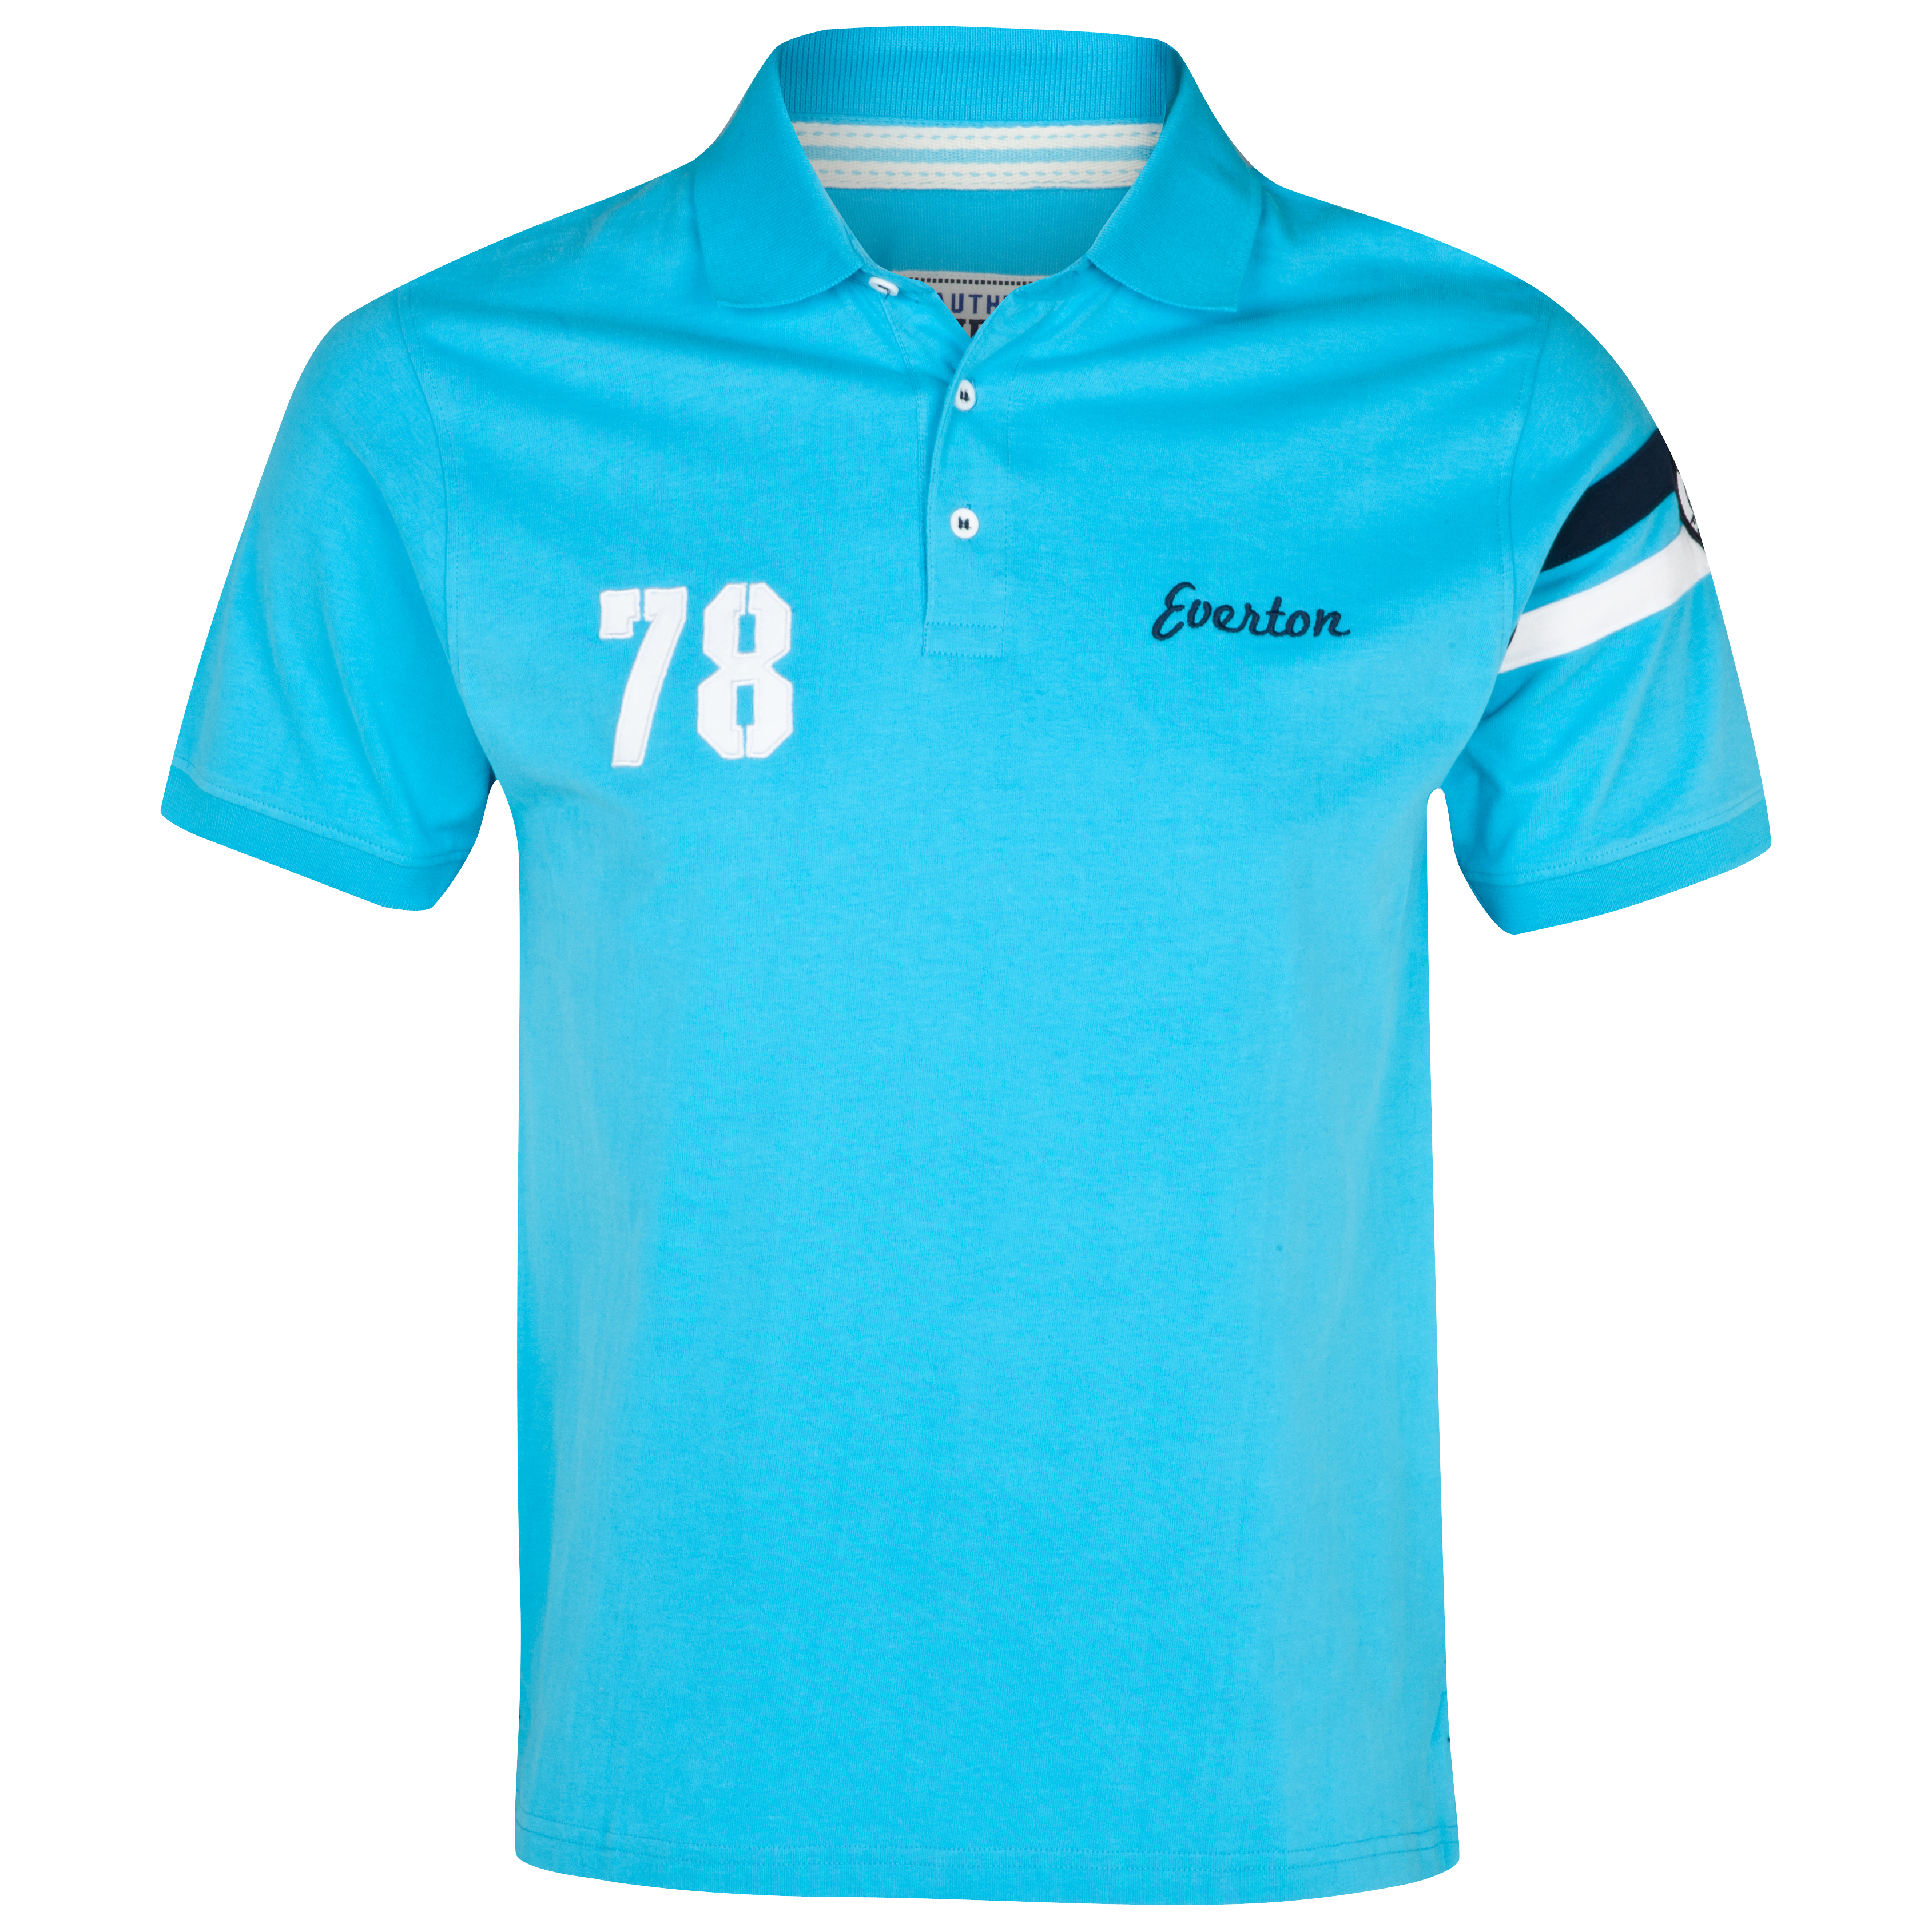 Everton Arms Polo Top - Aqua - Older Boys